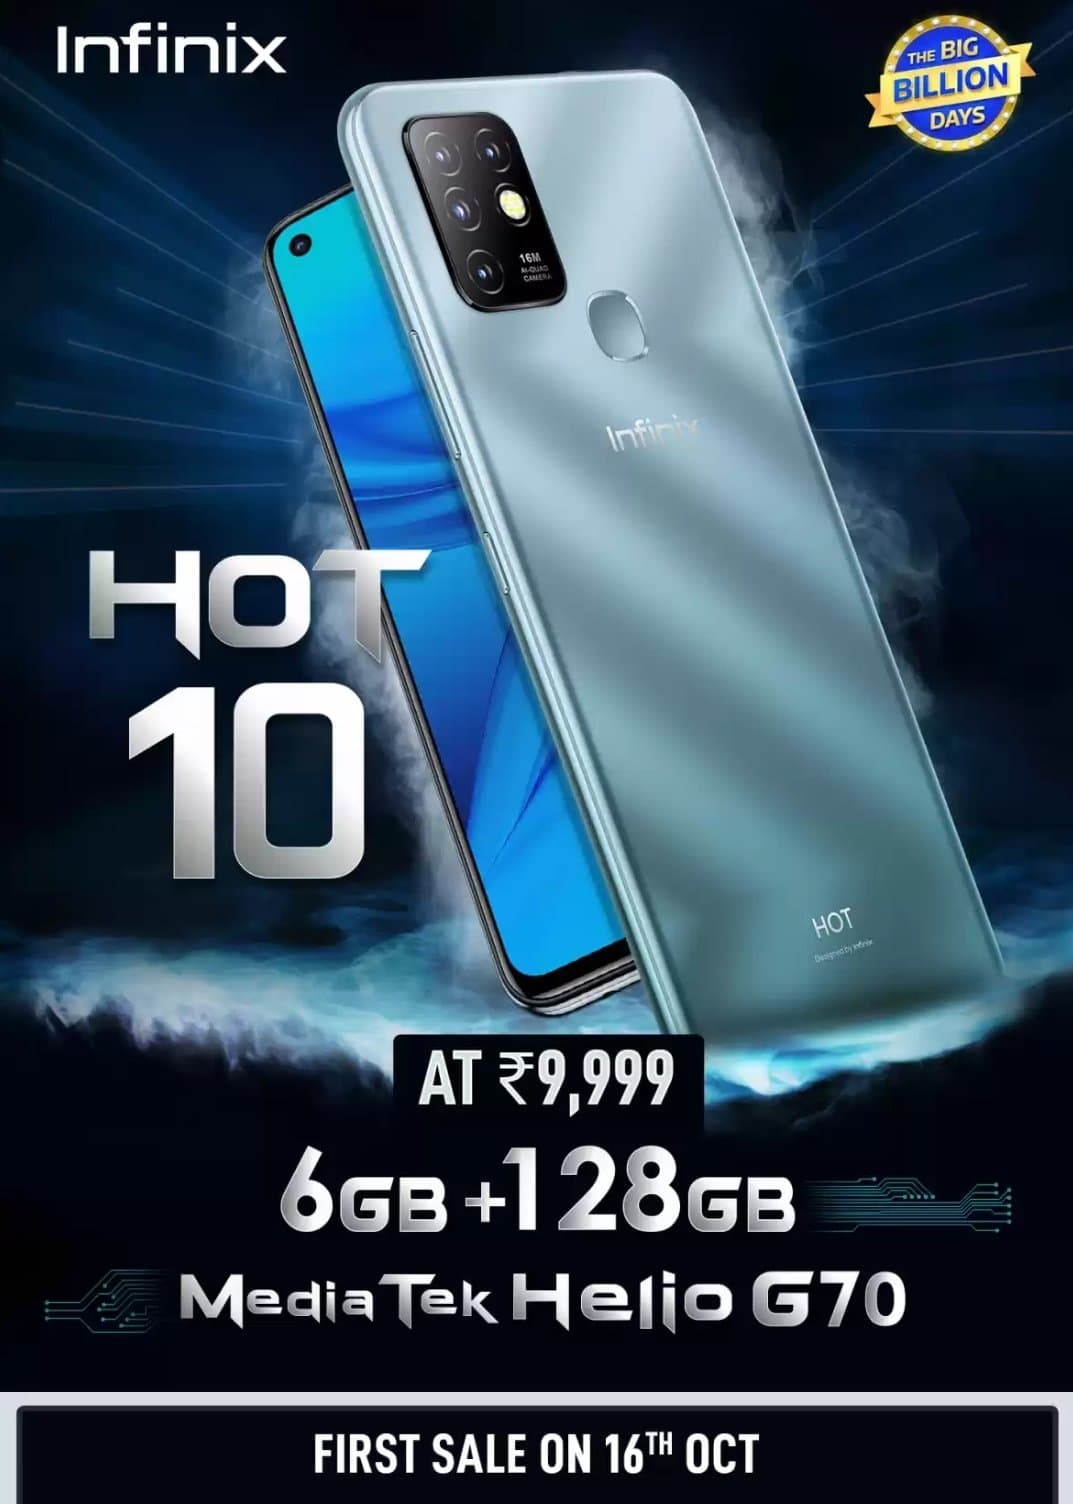 Infinix Hot 10 launched in India MediaTek Helio G70 Processor at Rs. 9,999 check specs and price in India of infinix hot10